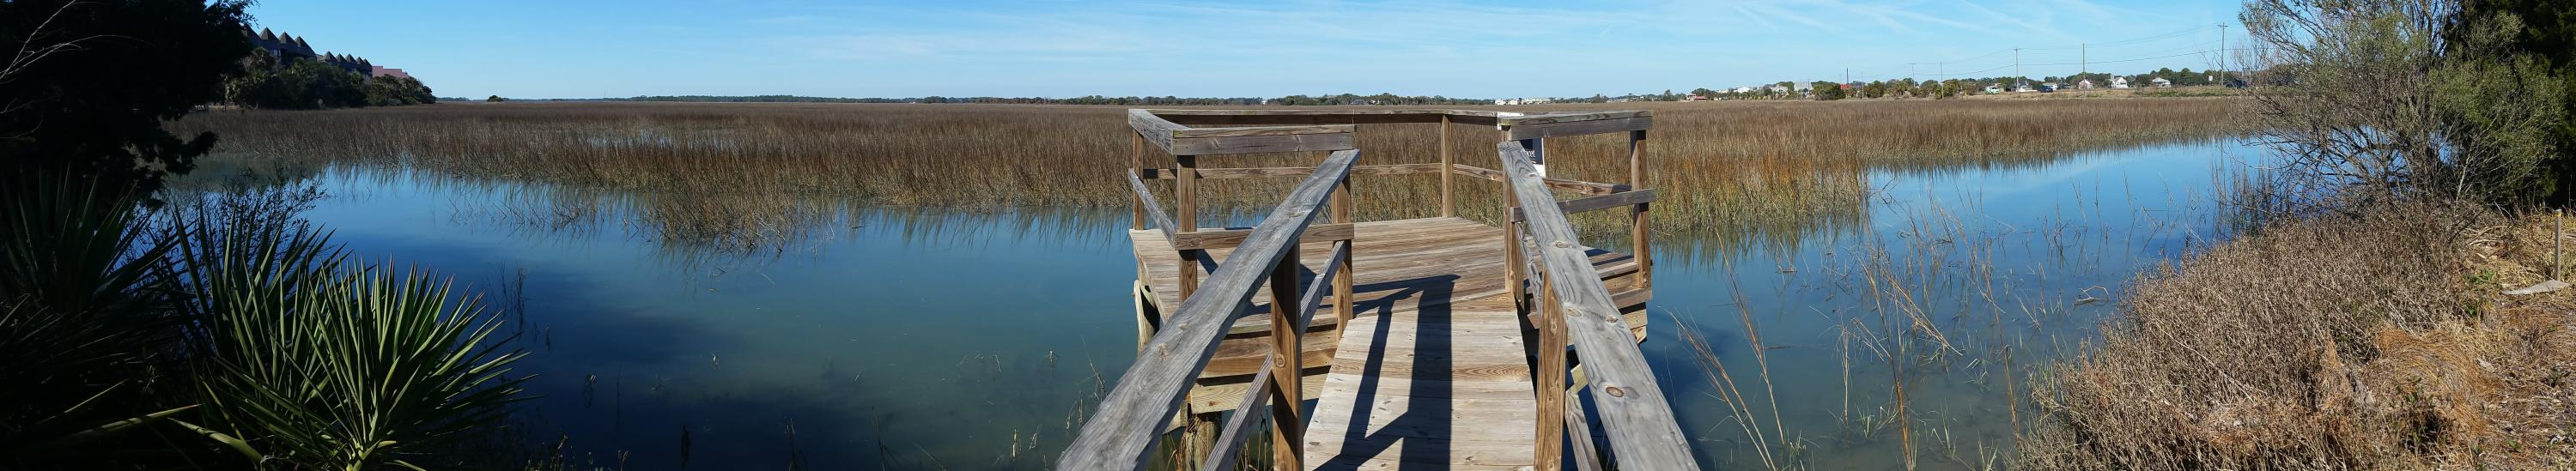 Mariners Cay Homes For Sale - 1006 Mariners Cay, Folly Beach, SC - 8